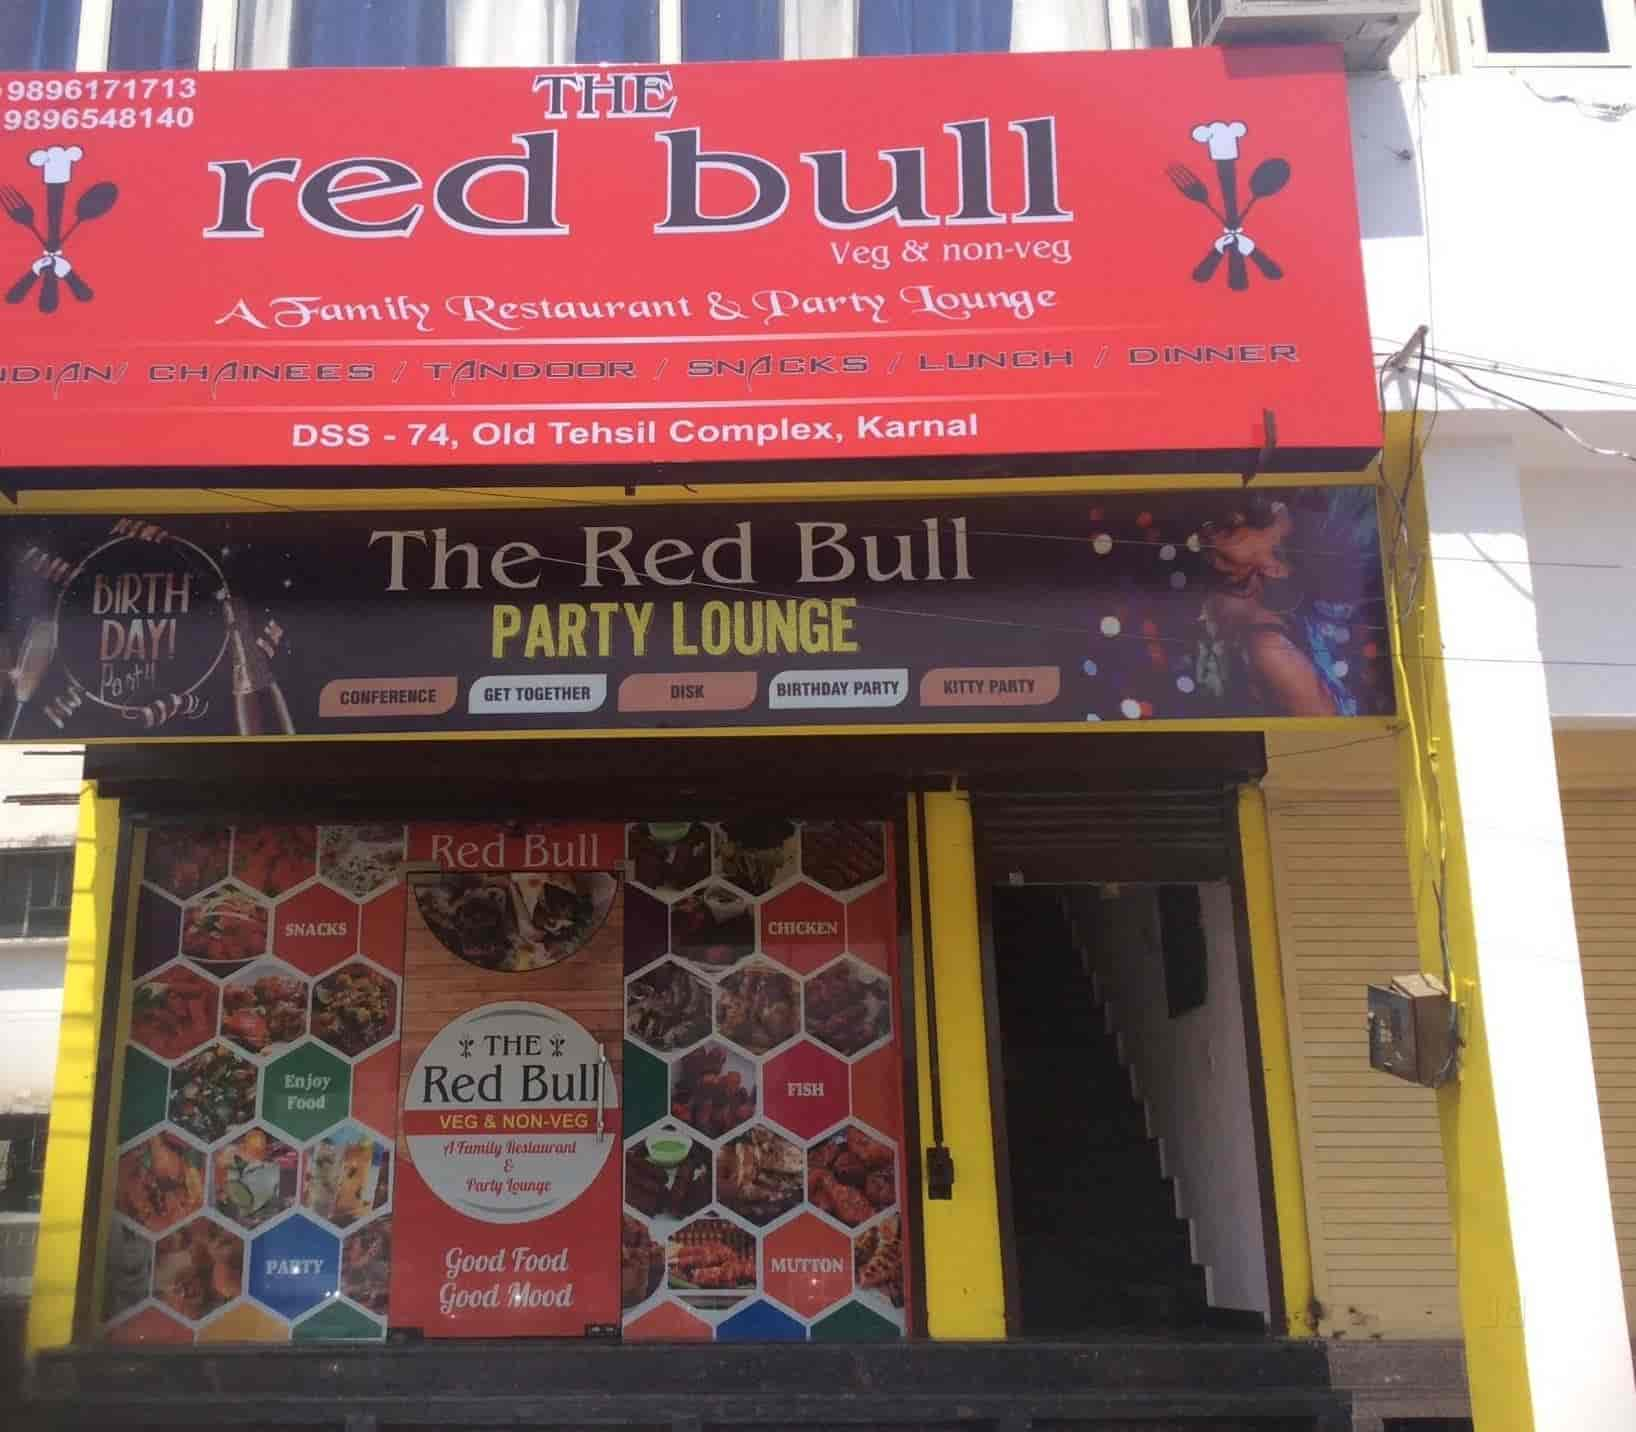 The Red Bull Restaurant & Party Lawn, Opp Hdfc Bank, Karnal